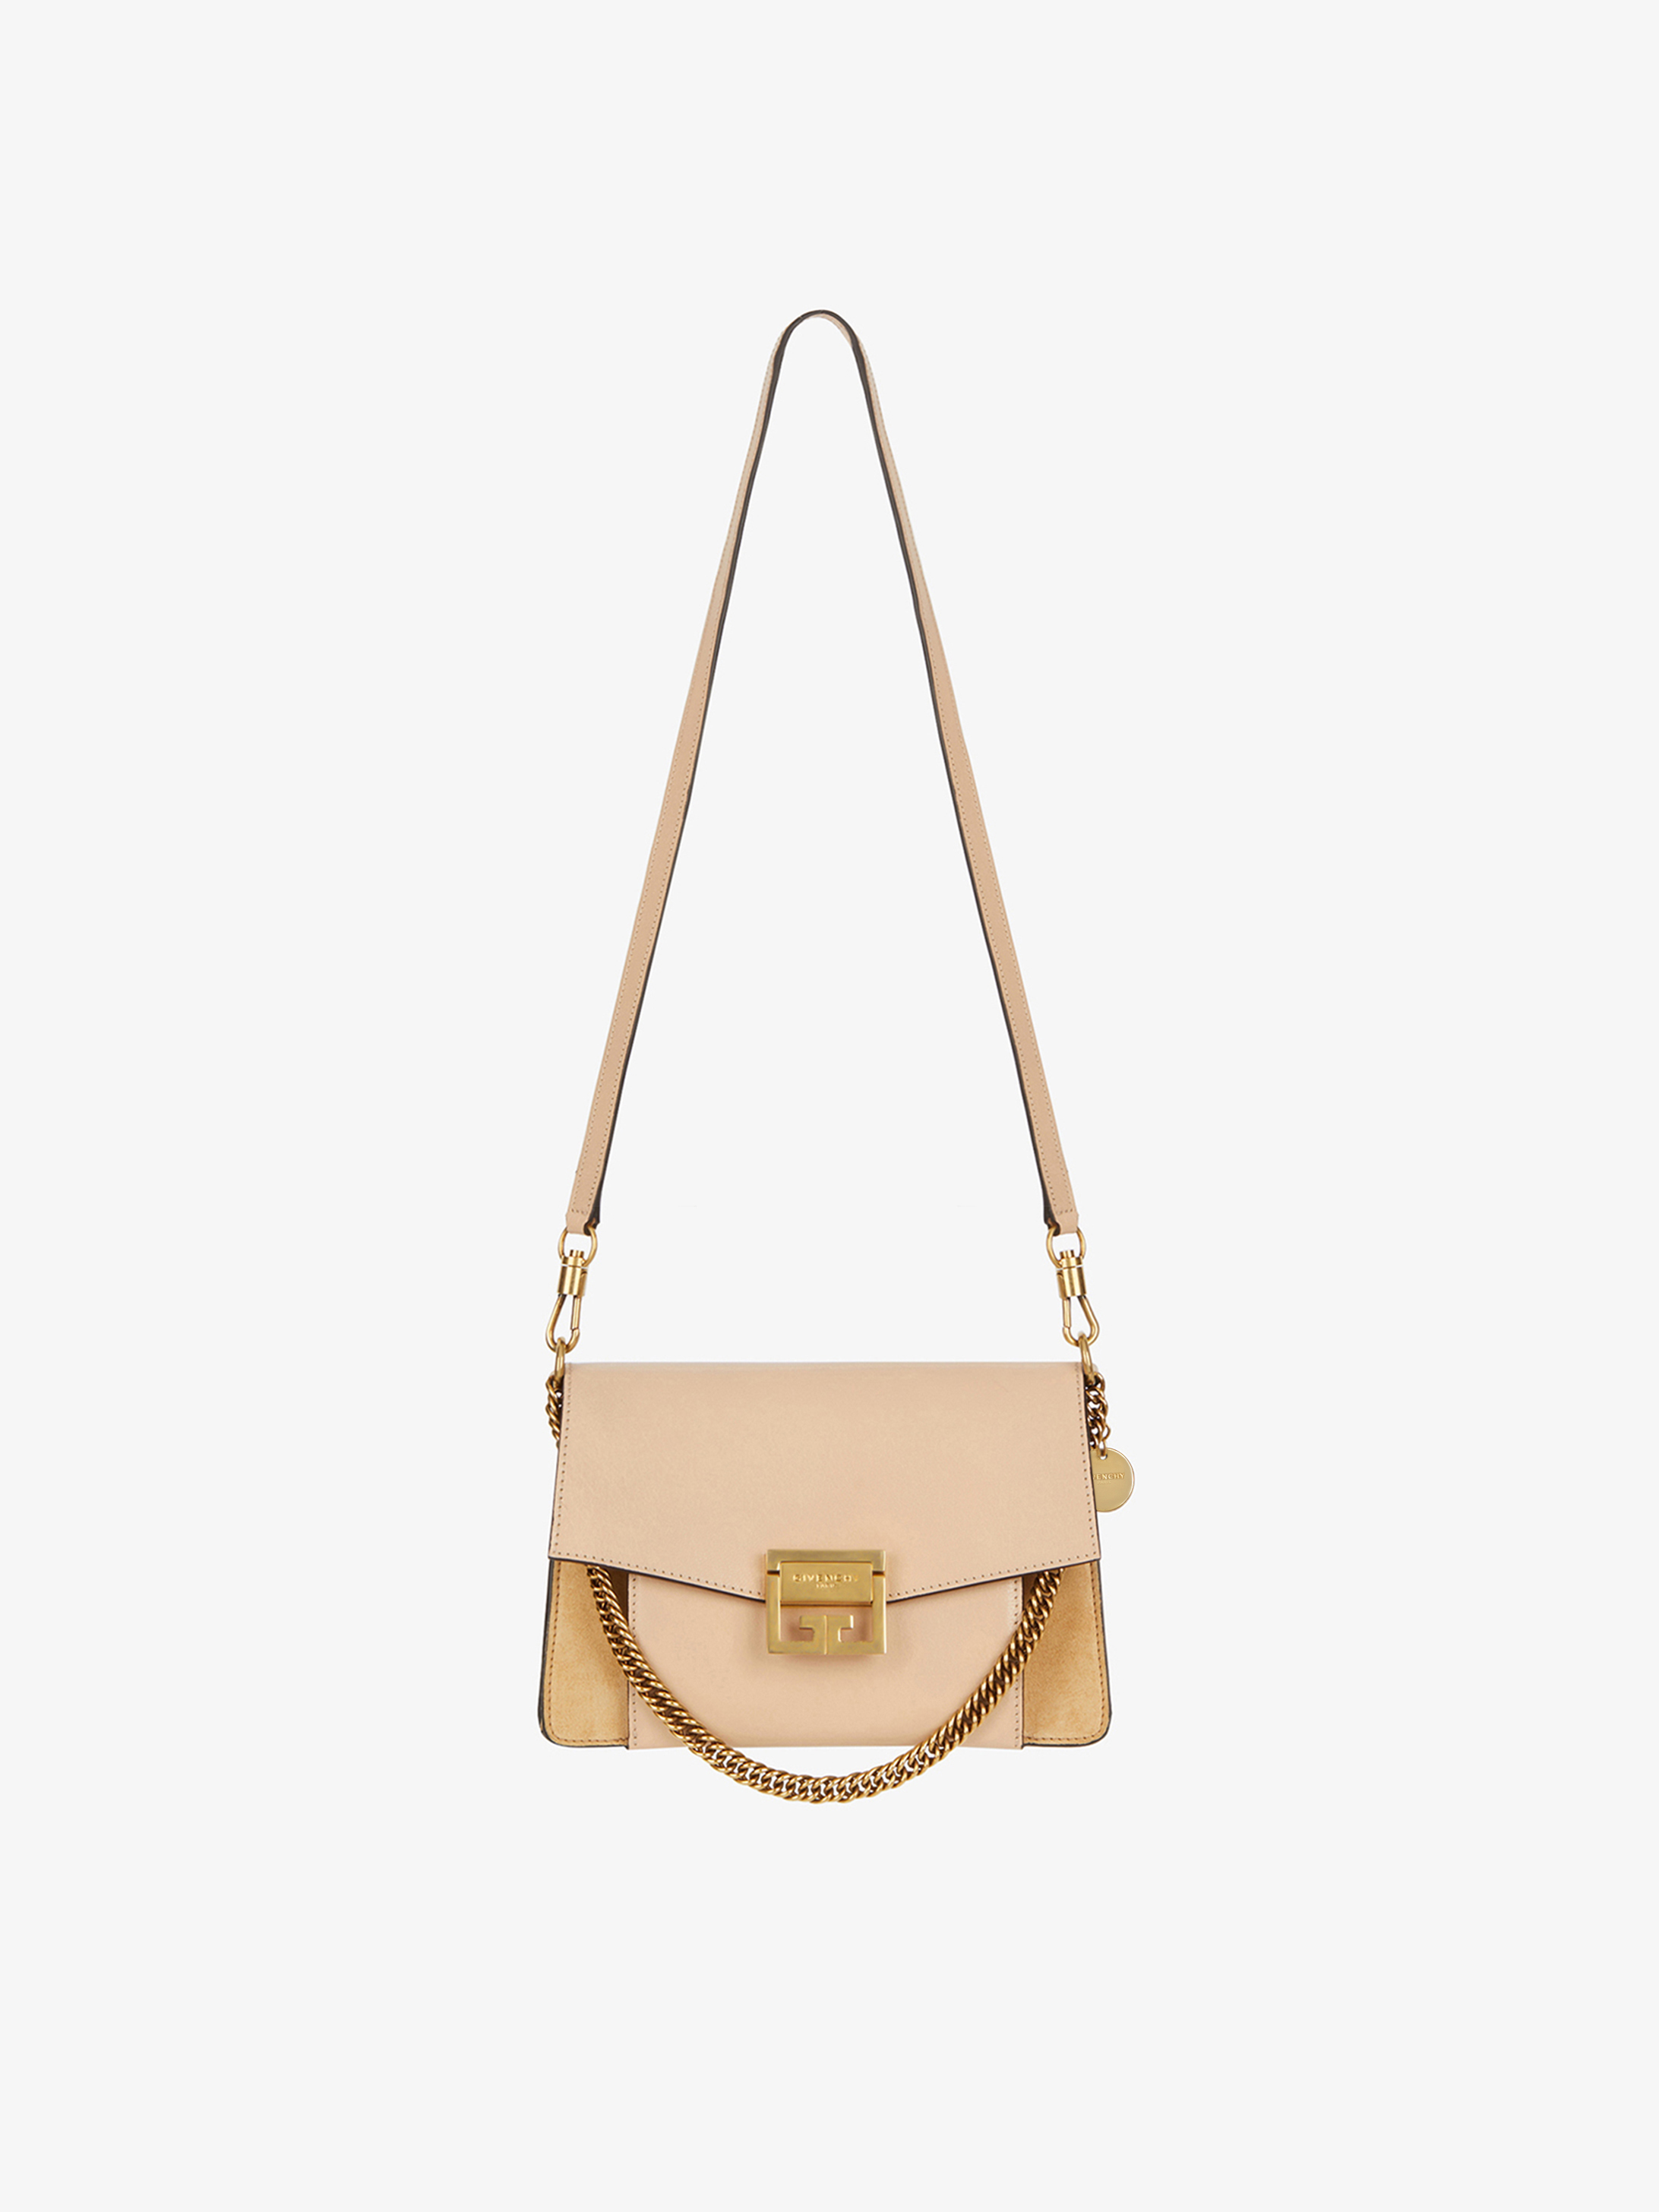 New Arrival Sale Online Beige Small GV3 Bag Givenchy Buy Cheap Authentic Cheap Extremely Cheap Sale Footlocker Finishline 7ZN2KeeM